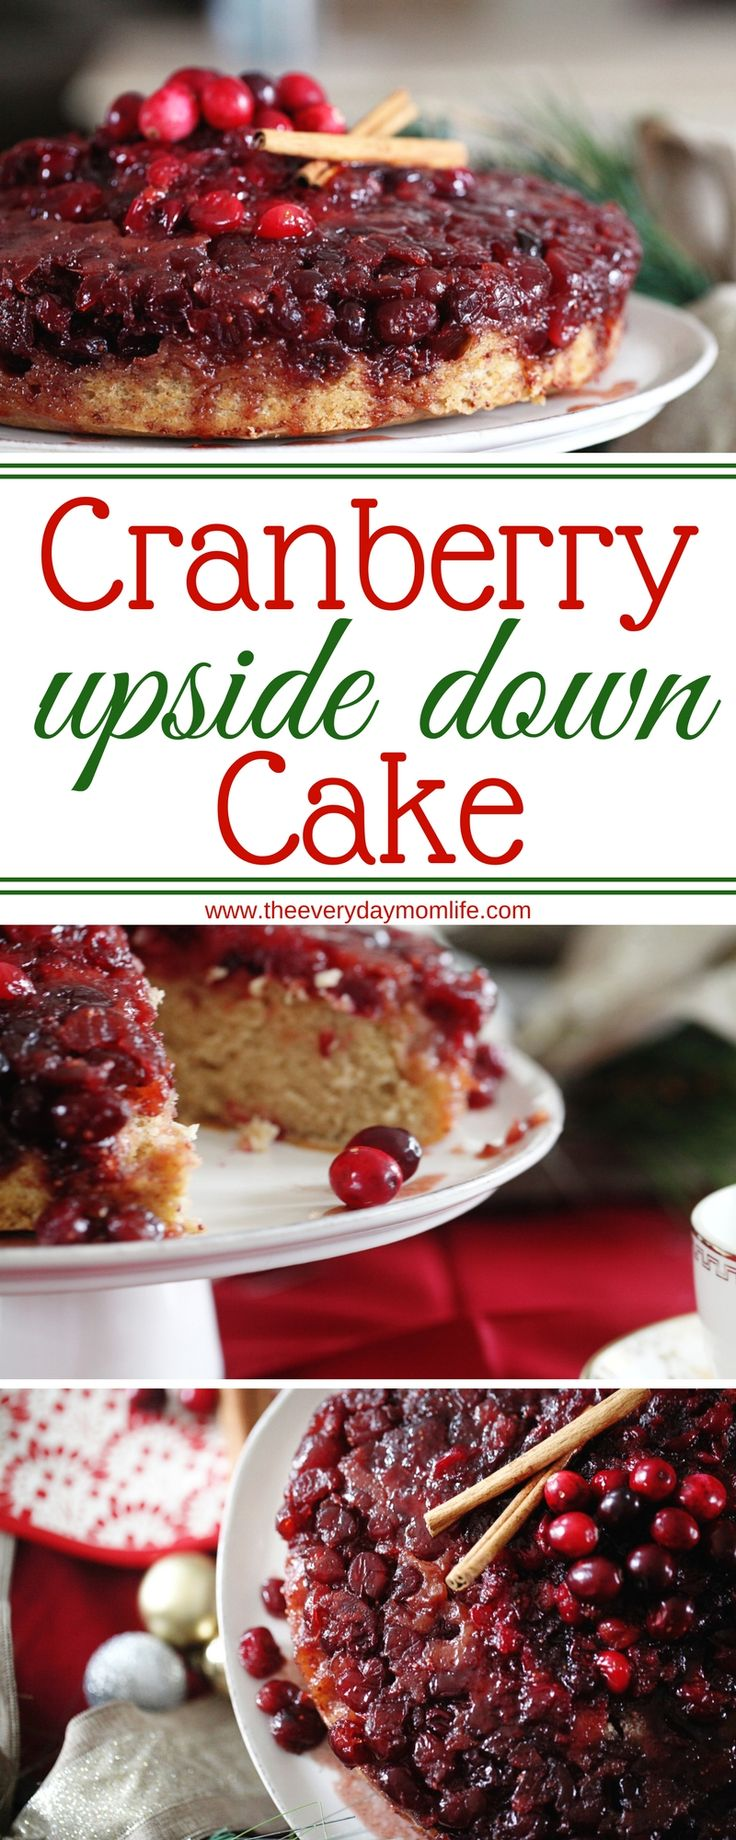 The Best Cranberry Upside Down Cake. Make this for Christmas or Thanksgiving. It's the perfect dessert for family holidays. #desserts #dessertrecipes #Cranberry #christmasdesserts #recipes #recipeoftheday #recipeshare